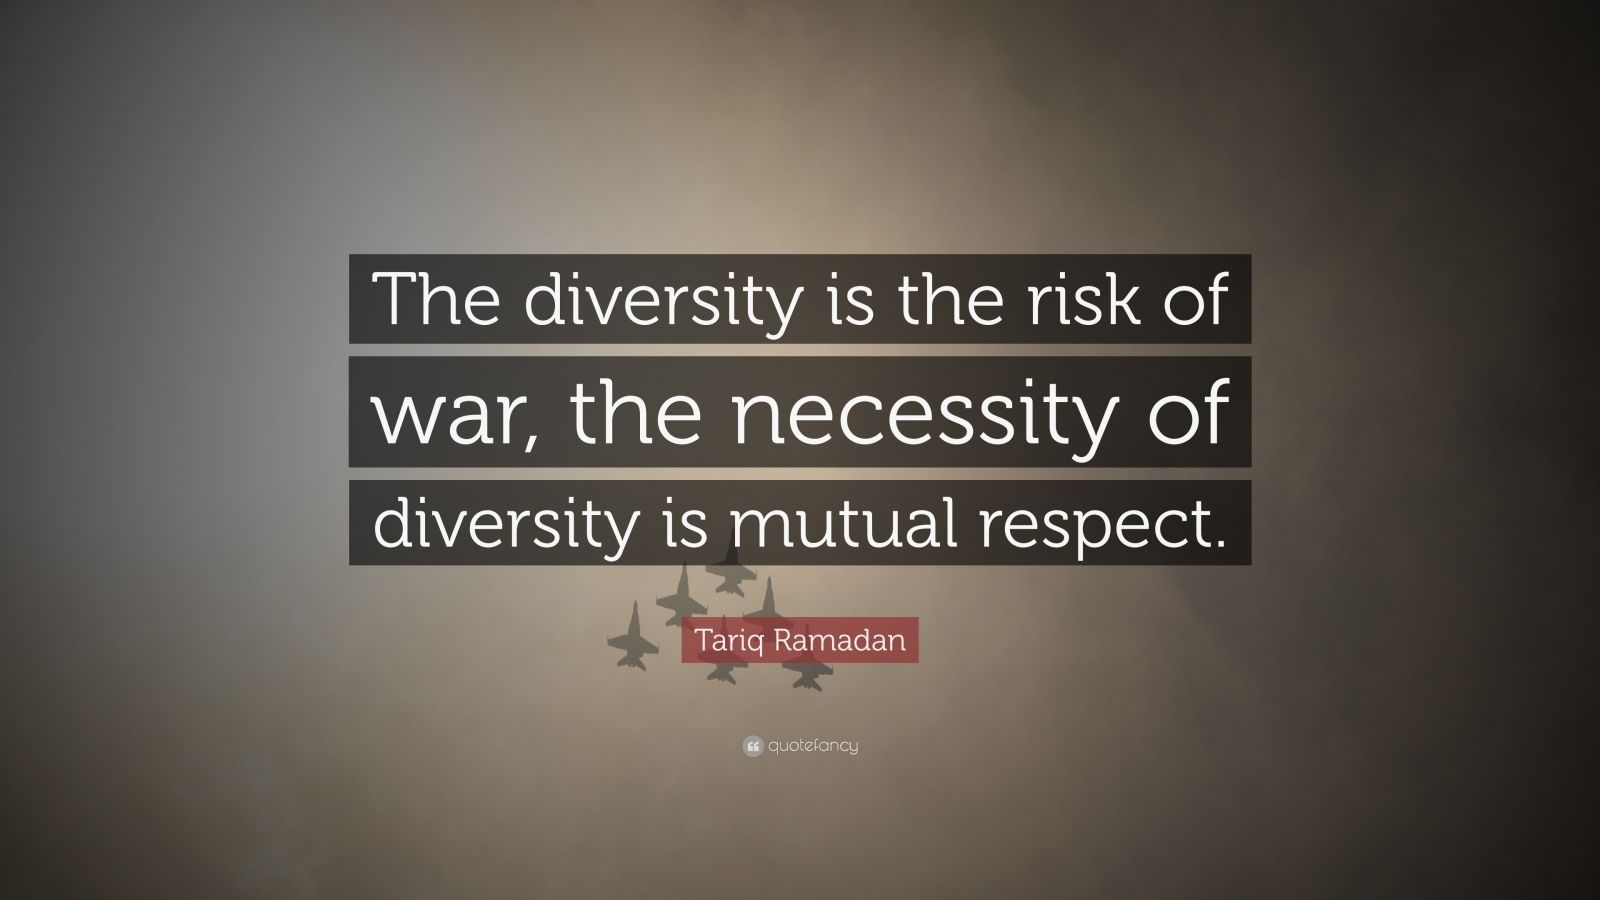 Quotes On Diversity Tariq Ramadan Quotes 100 Wallpapers  Quotefancy